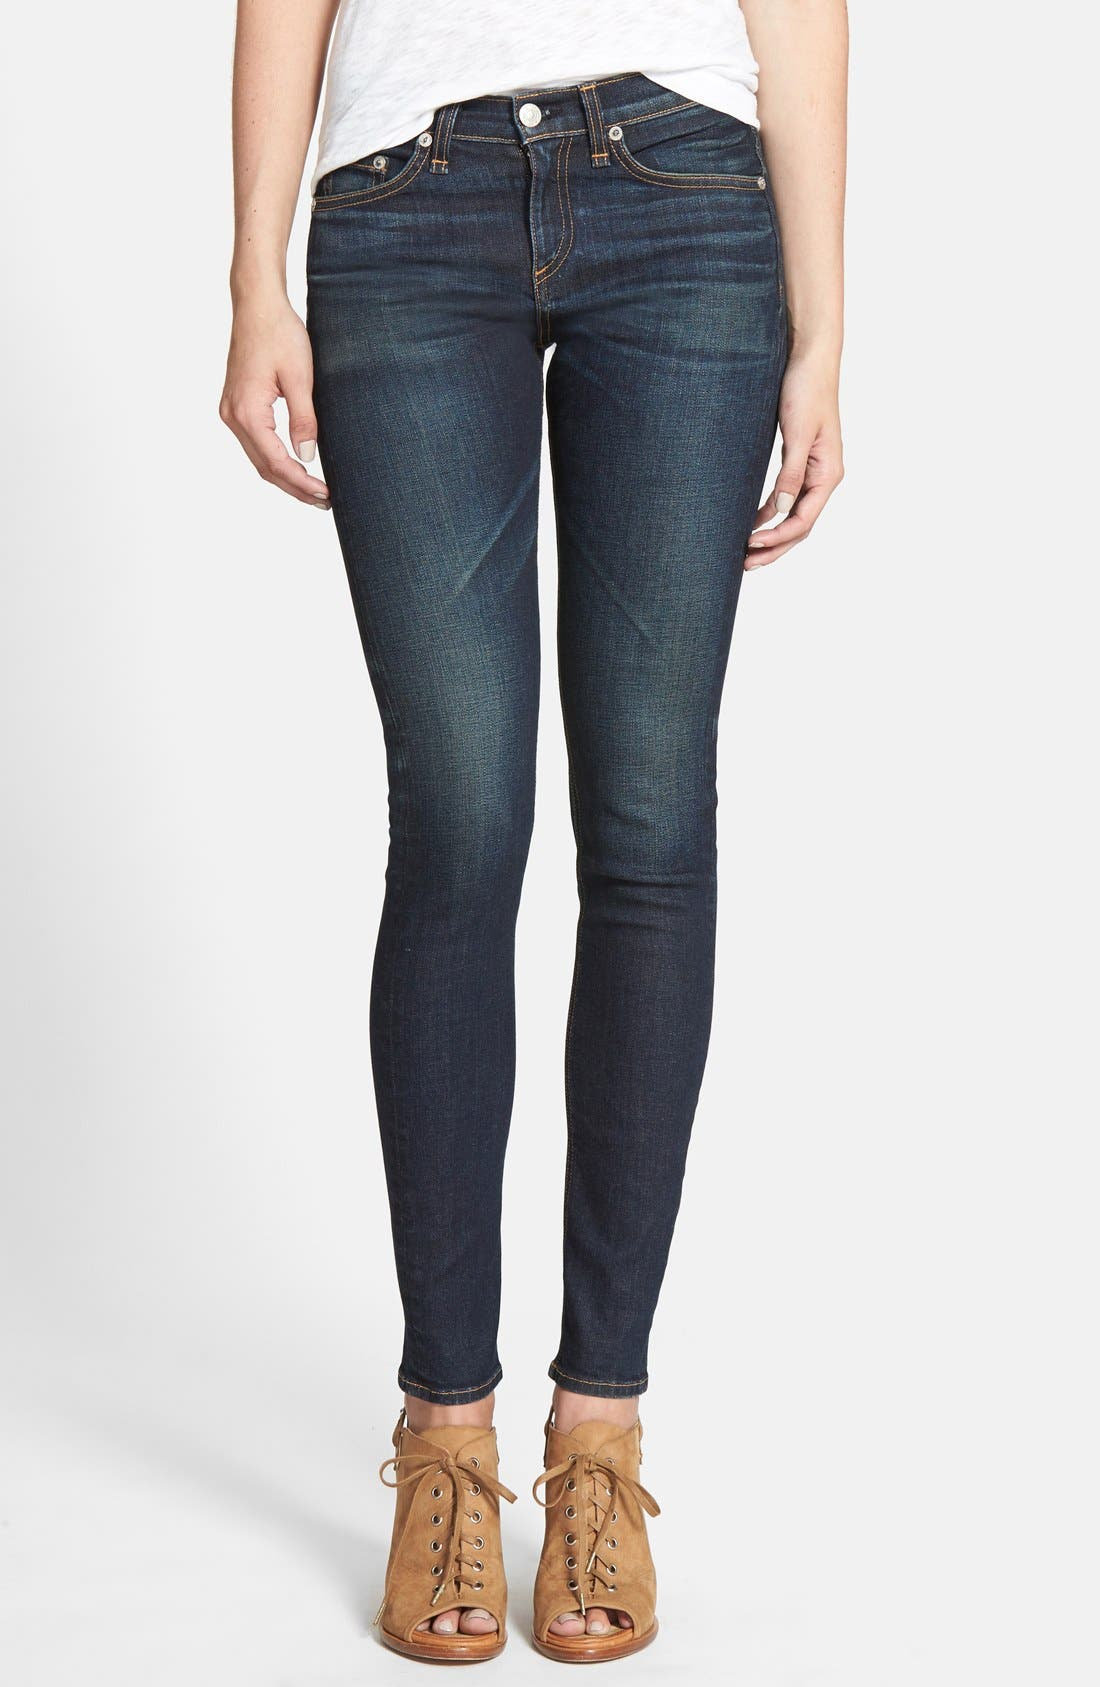 Alternate Image 1 Selected - rag & bone/JEAN High Rise Skinny Stretch Jeans (Chaucer)